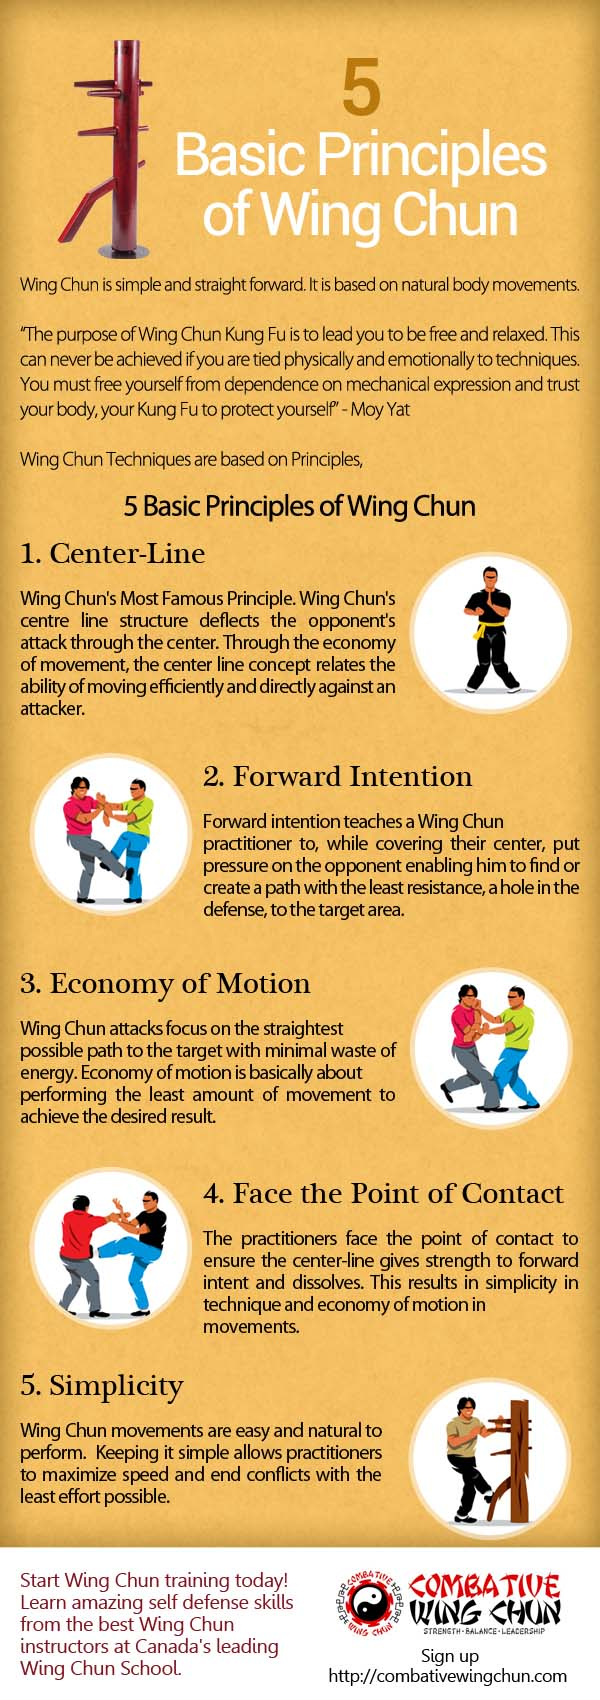 5 Basic Principles of Wing Chun